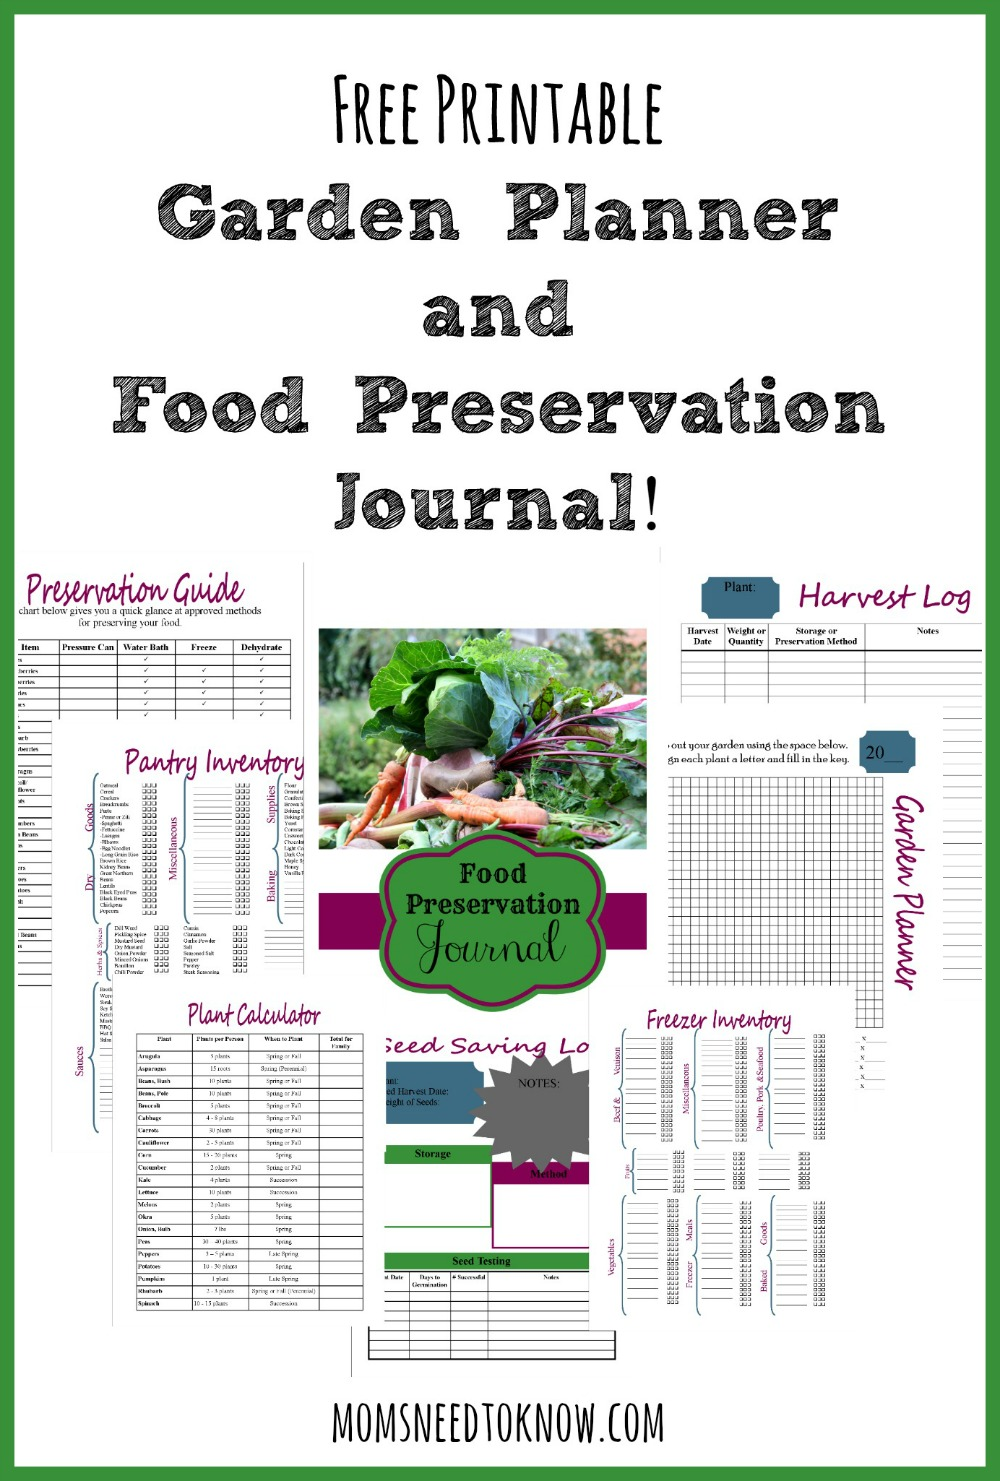 With this free printable garden planner not only can you map out your entire garden, but plan for all your canning and freezing needs!